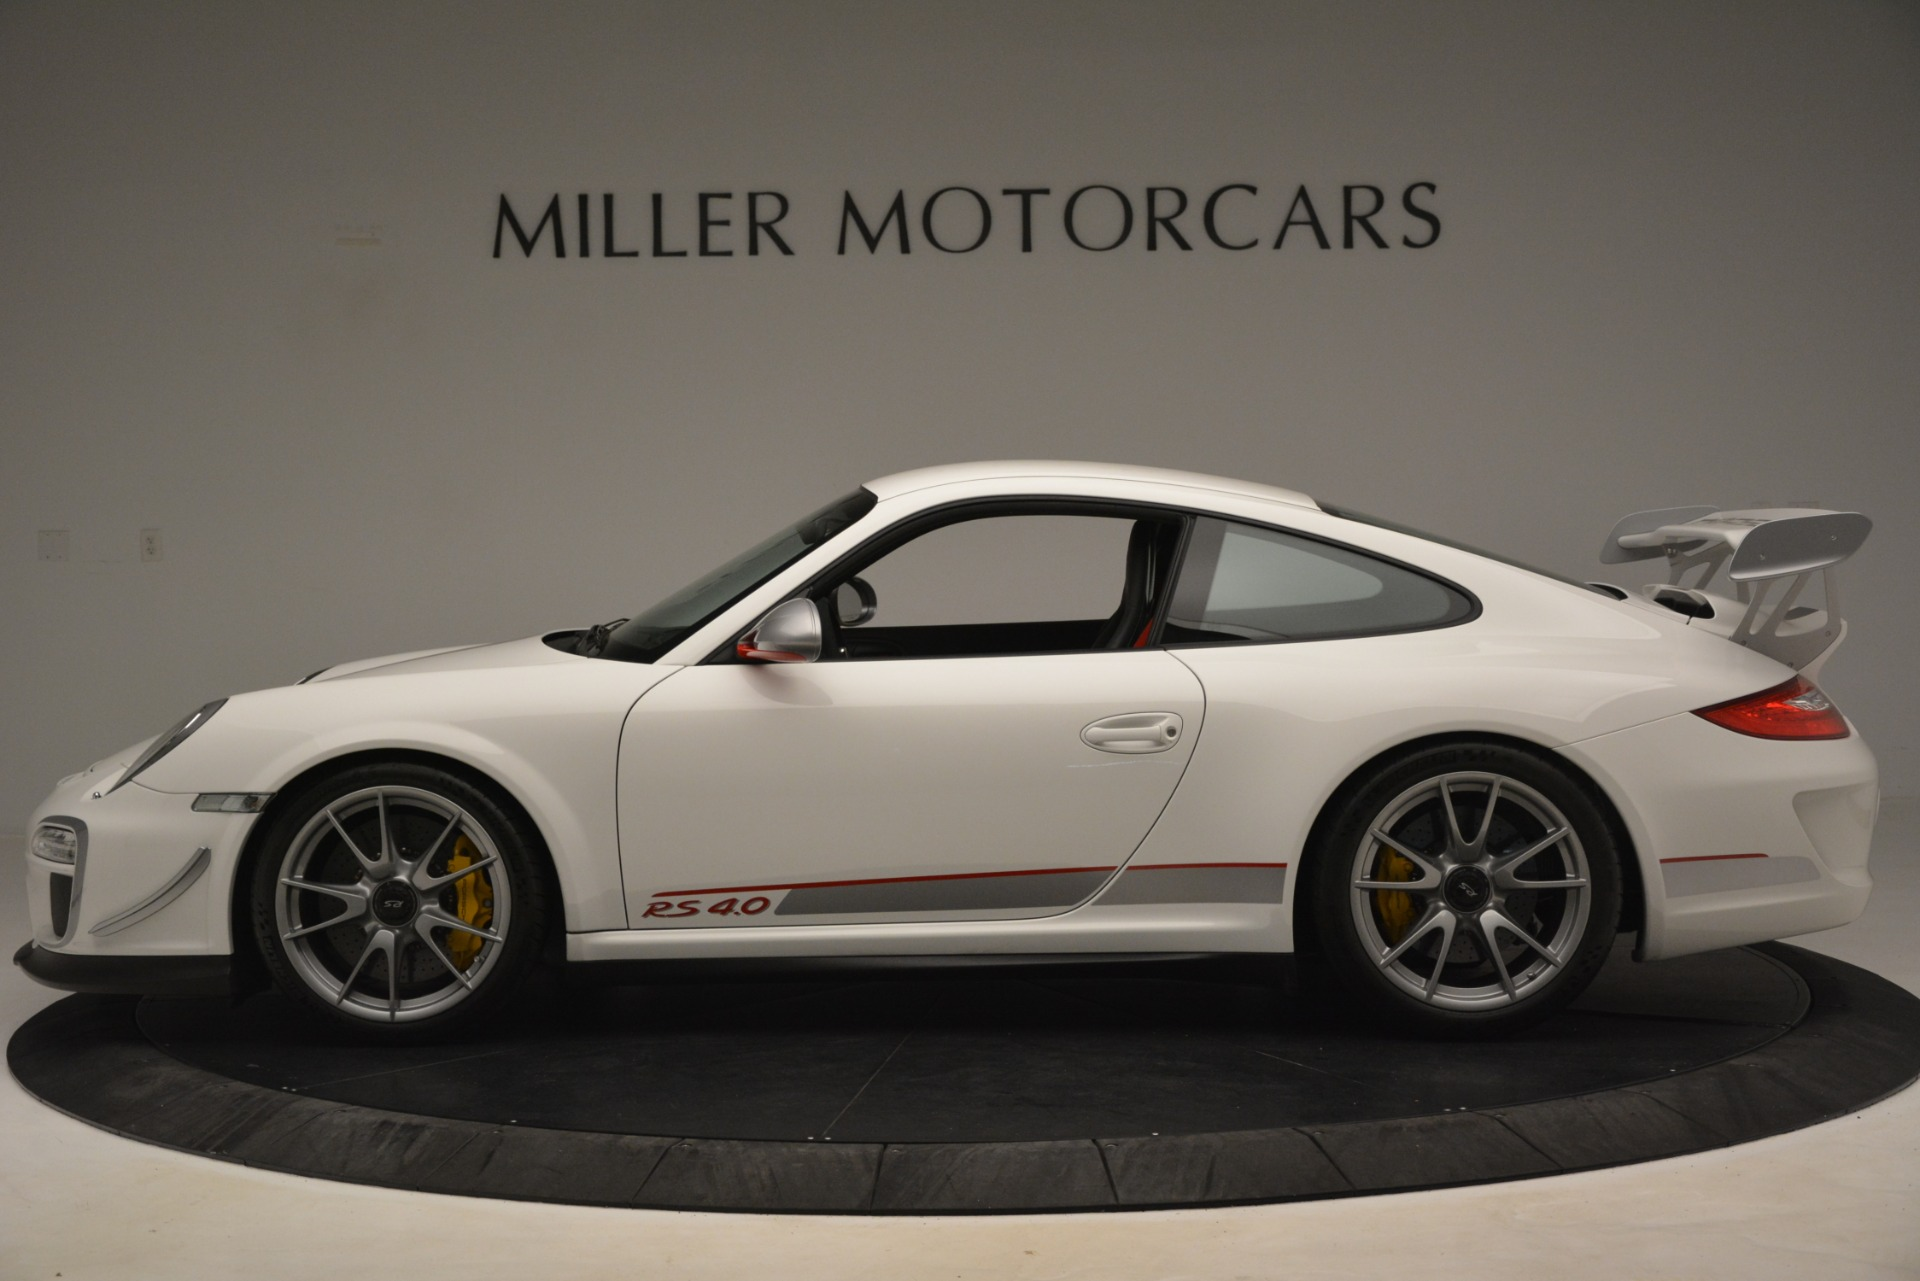 Used 2011 Porsche 911 GT3 RS 4.0 For Sale In Westport, CT 3188_p3